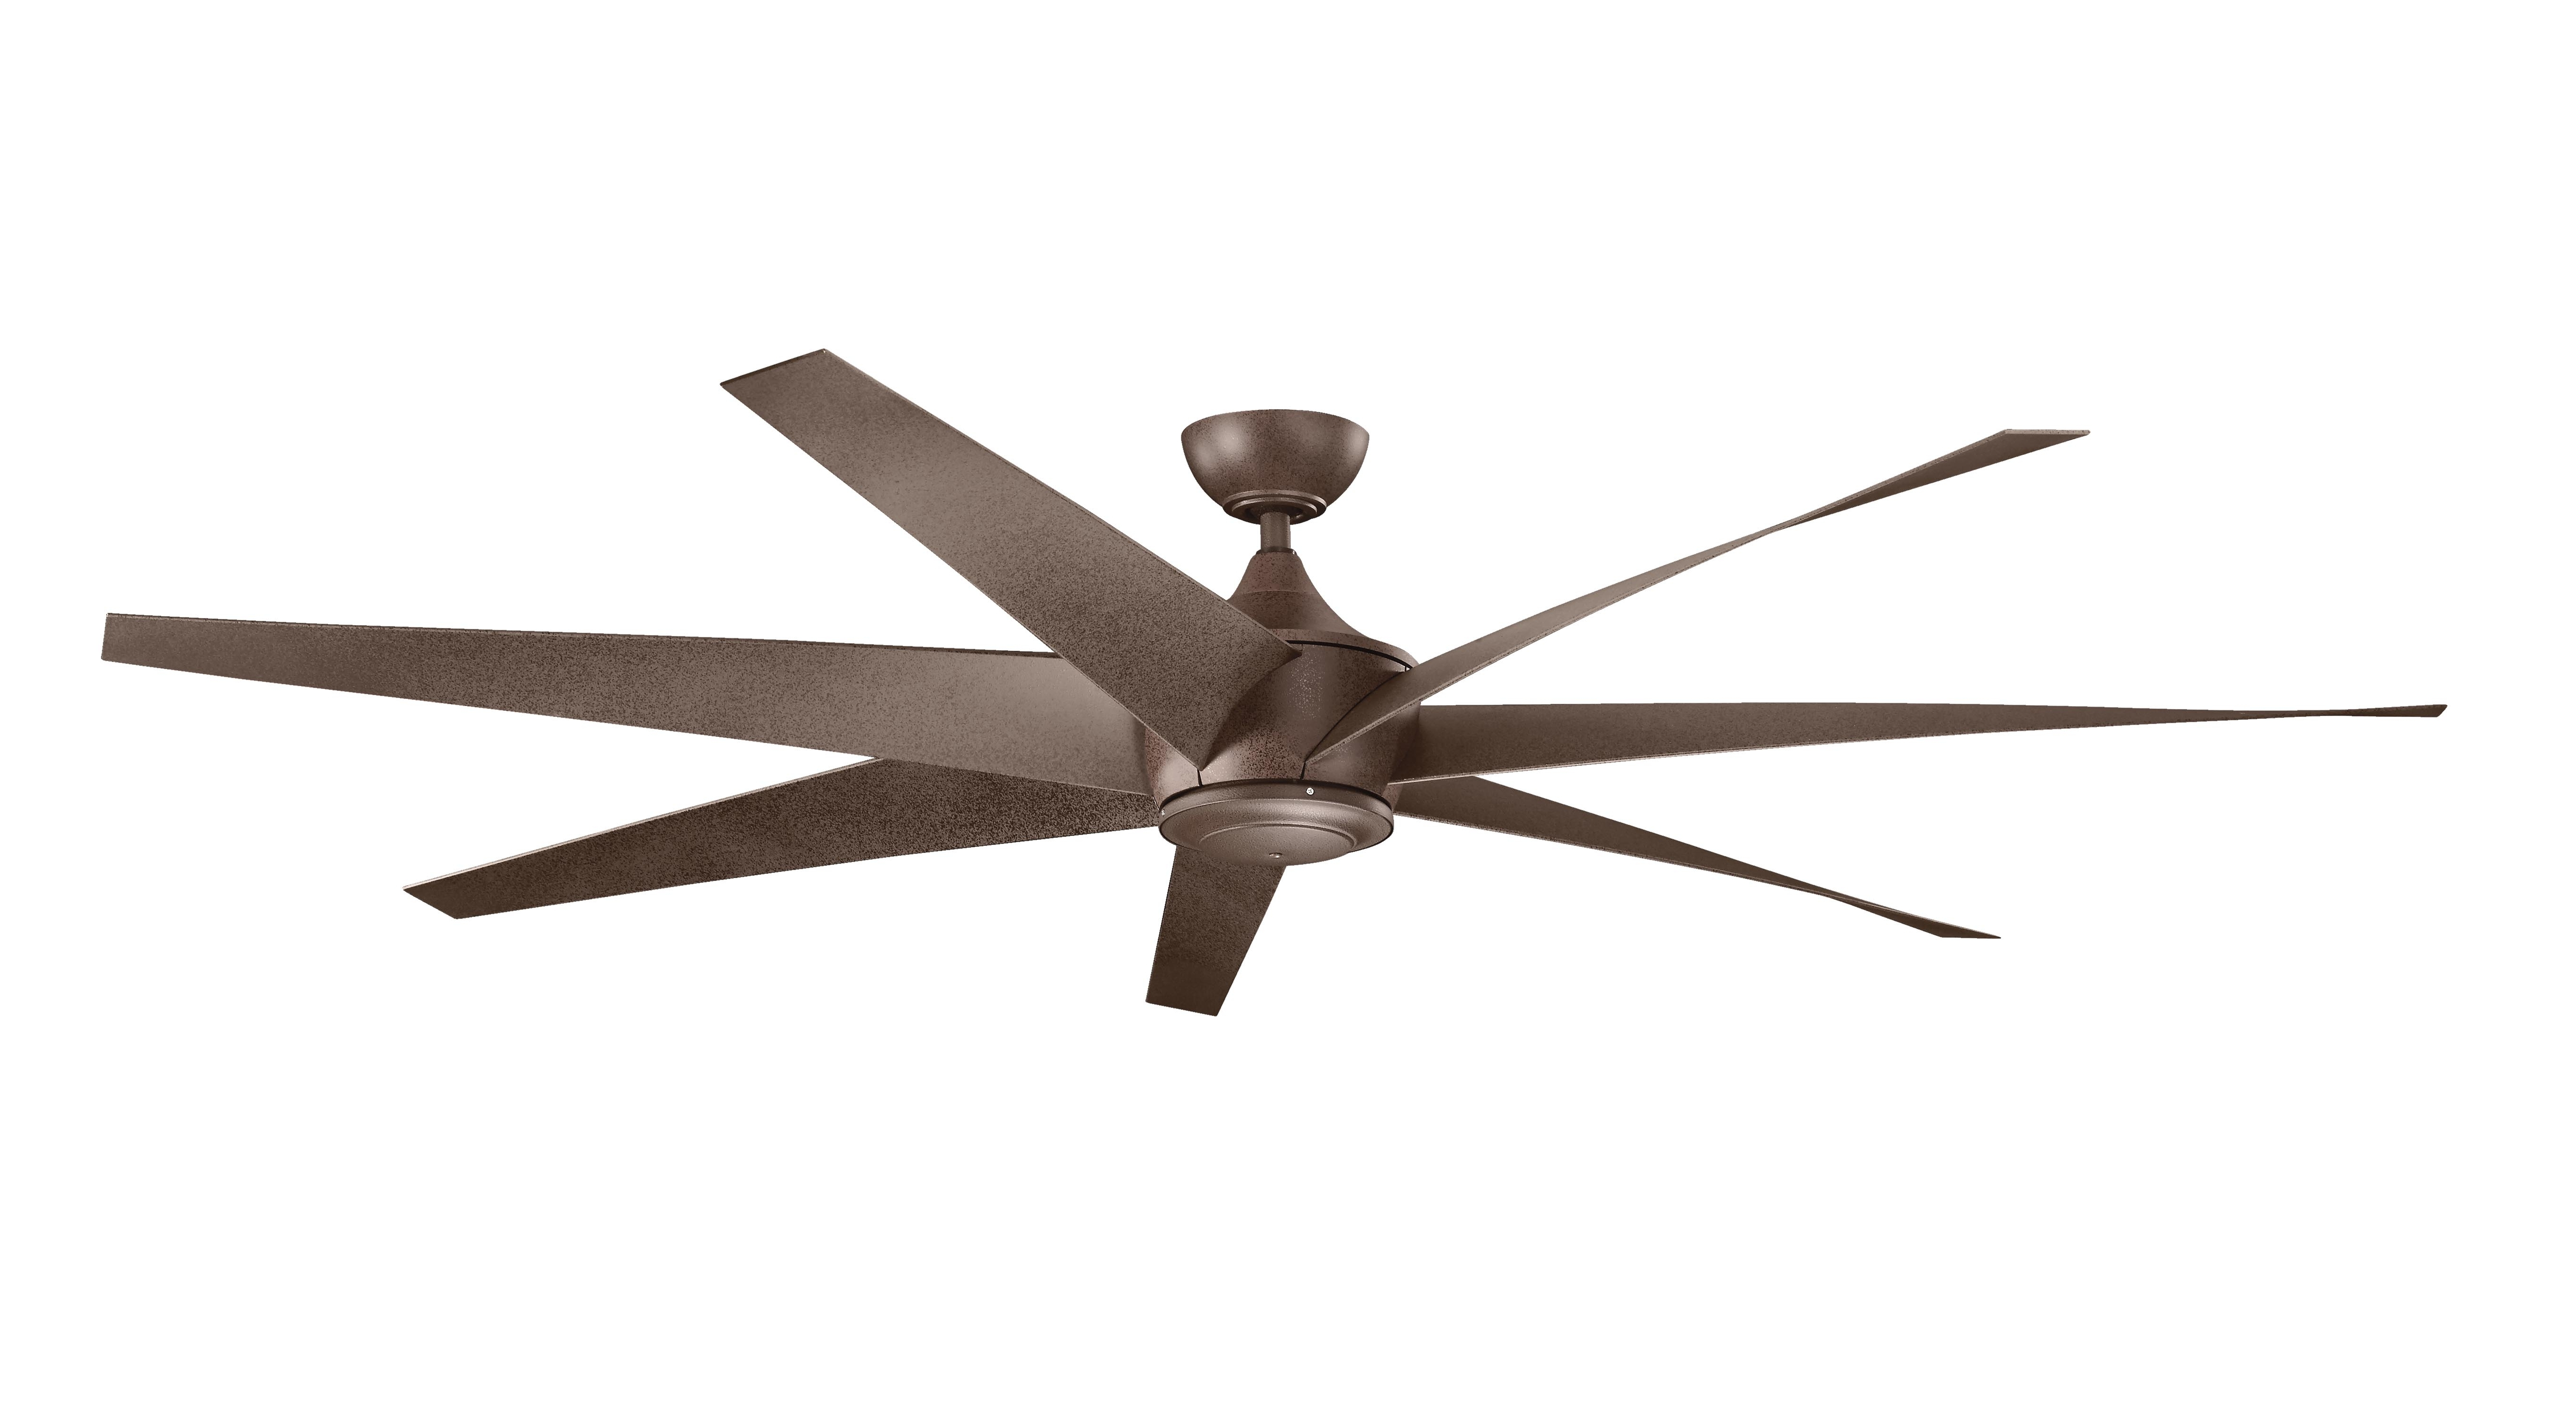 Well Liked Kichler Lehr Wet Climate Dc Ceiling Fan – New For 2016 Pertaining To Outdoor Ceiling Fans At Kichler (View 19 of 20)